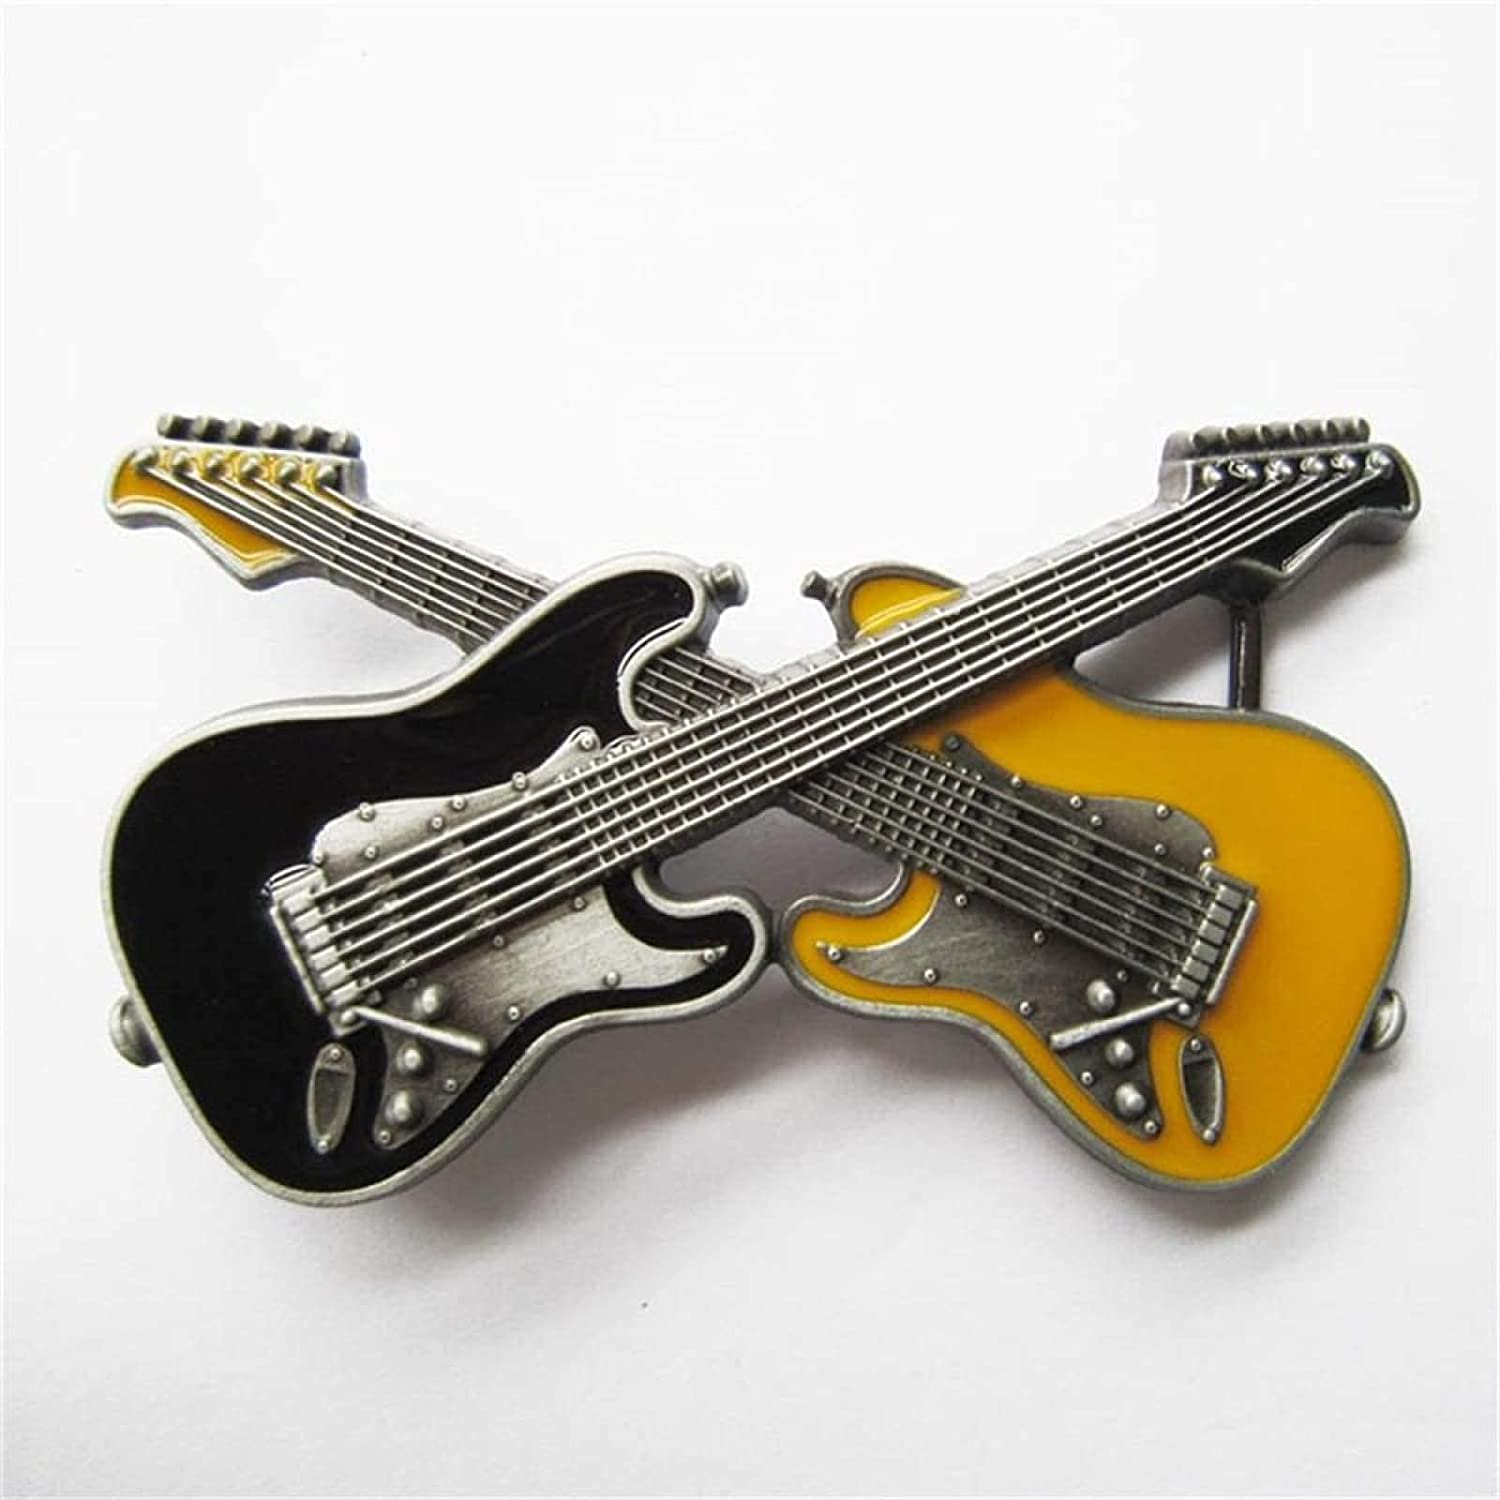 Max 42% OFF Retail Distribute Black New Shipping Free Yellow Crossed Guitars Belt Buckl Double